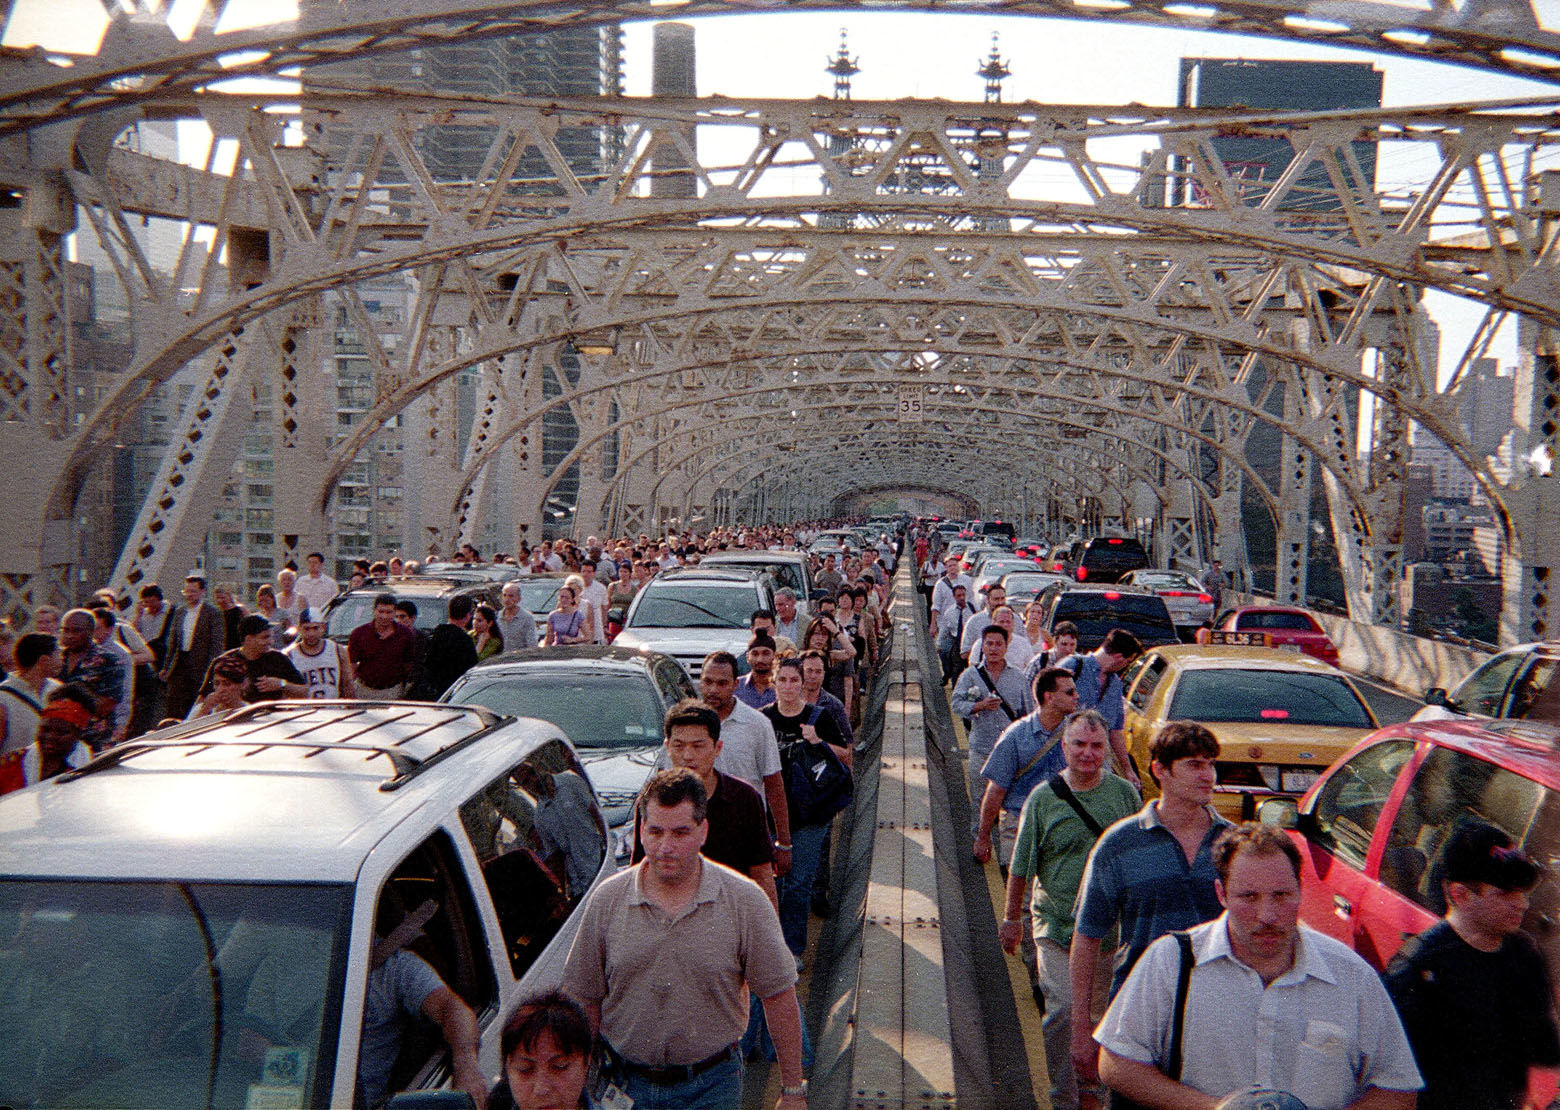 Commuters walk over the Queensborough Bridge with traffic stopped in gridlock in New York, Thursday, August 14, 2003 during a massive blackout which knocked out power in most of the Northeastern United States.  (AP Photo/Sean M. Thompson)